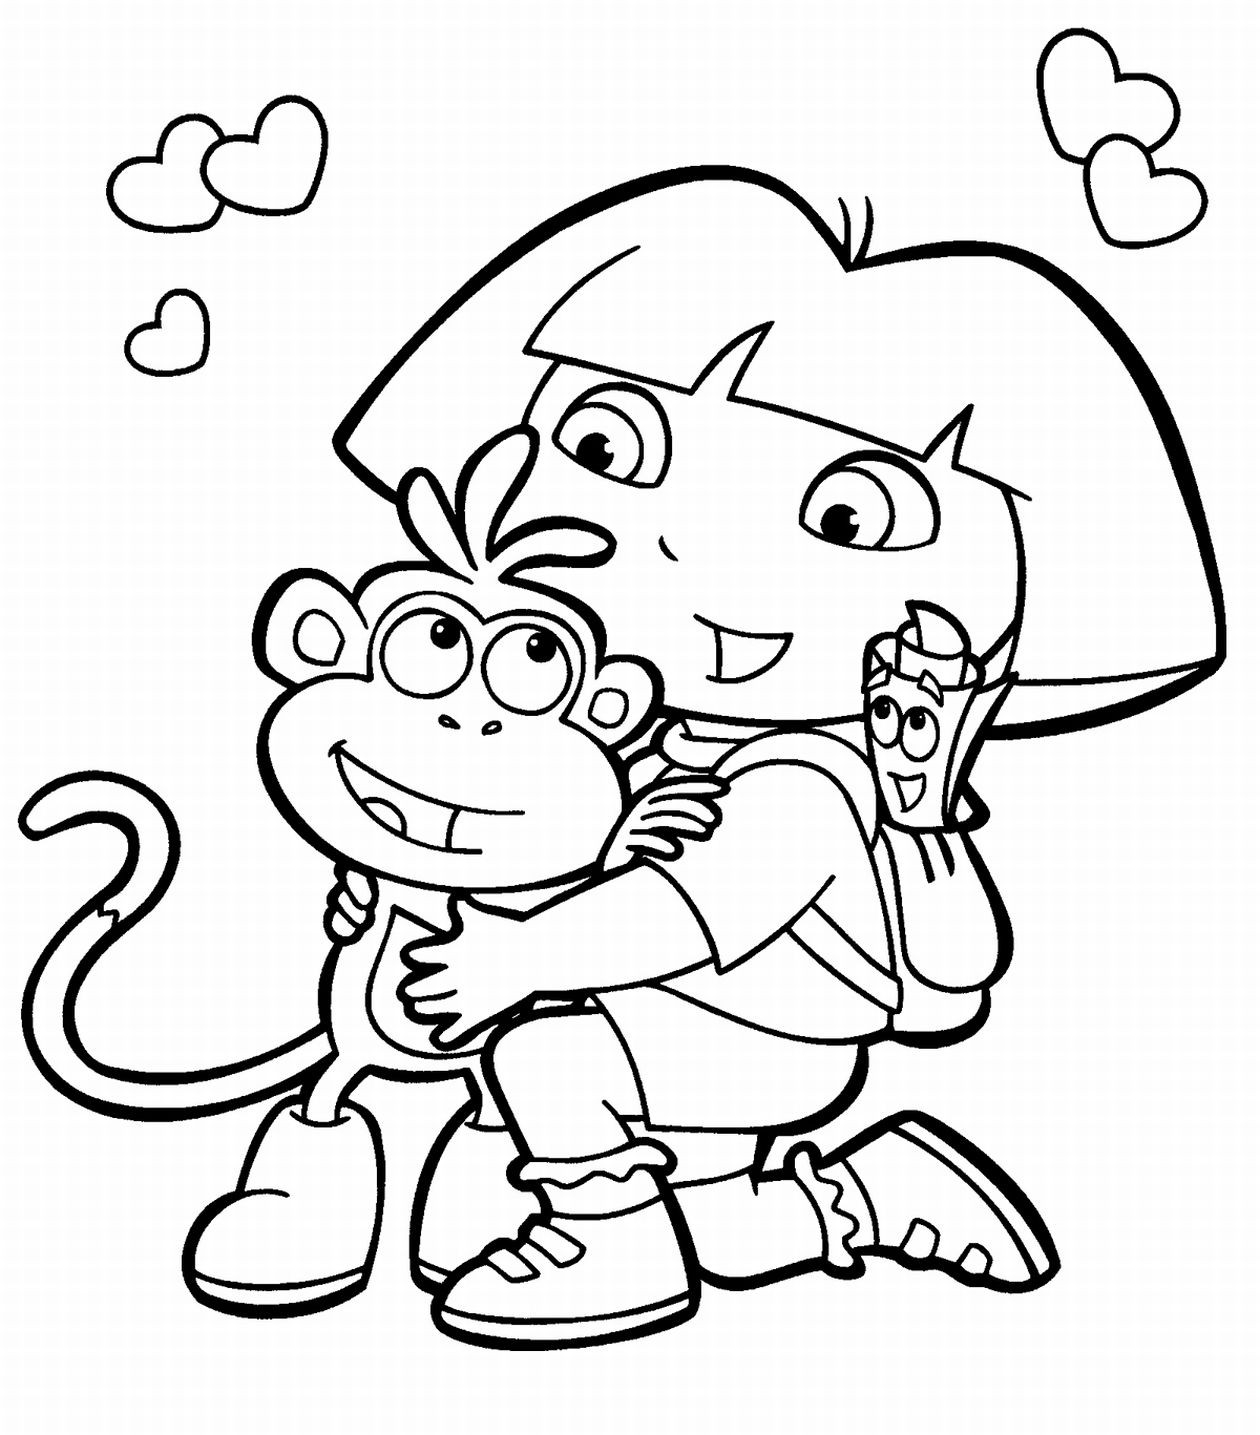 Free Printable Coloring Pages For Kids Best Free Printable Coloring Pages For Kids And Teens Pata Sauti